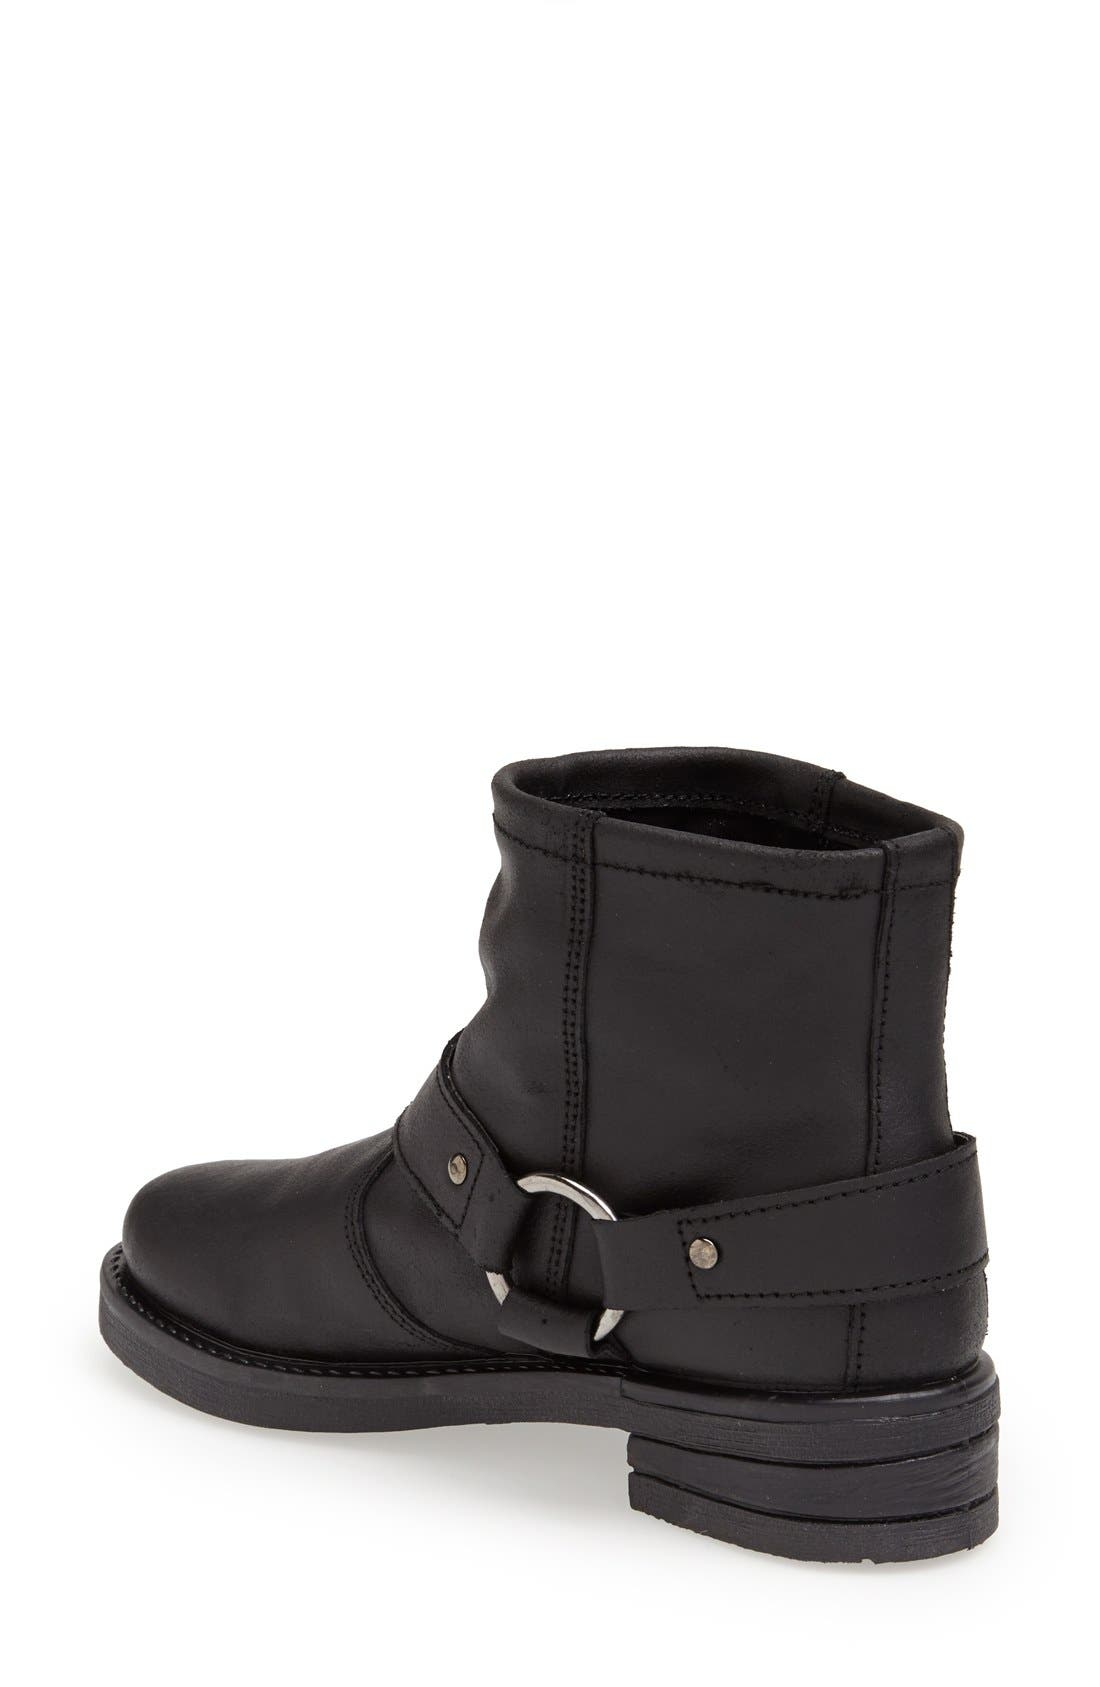 Alternate Image 2  - Topshop 'Buster' Leather Harness Biker Boot (Women)